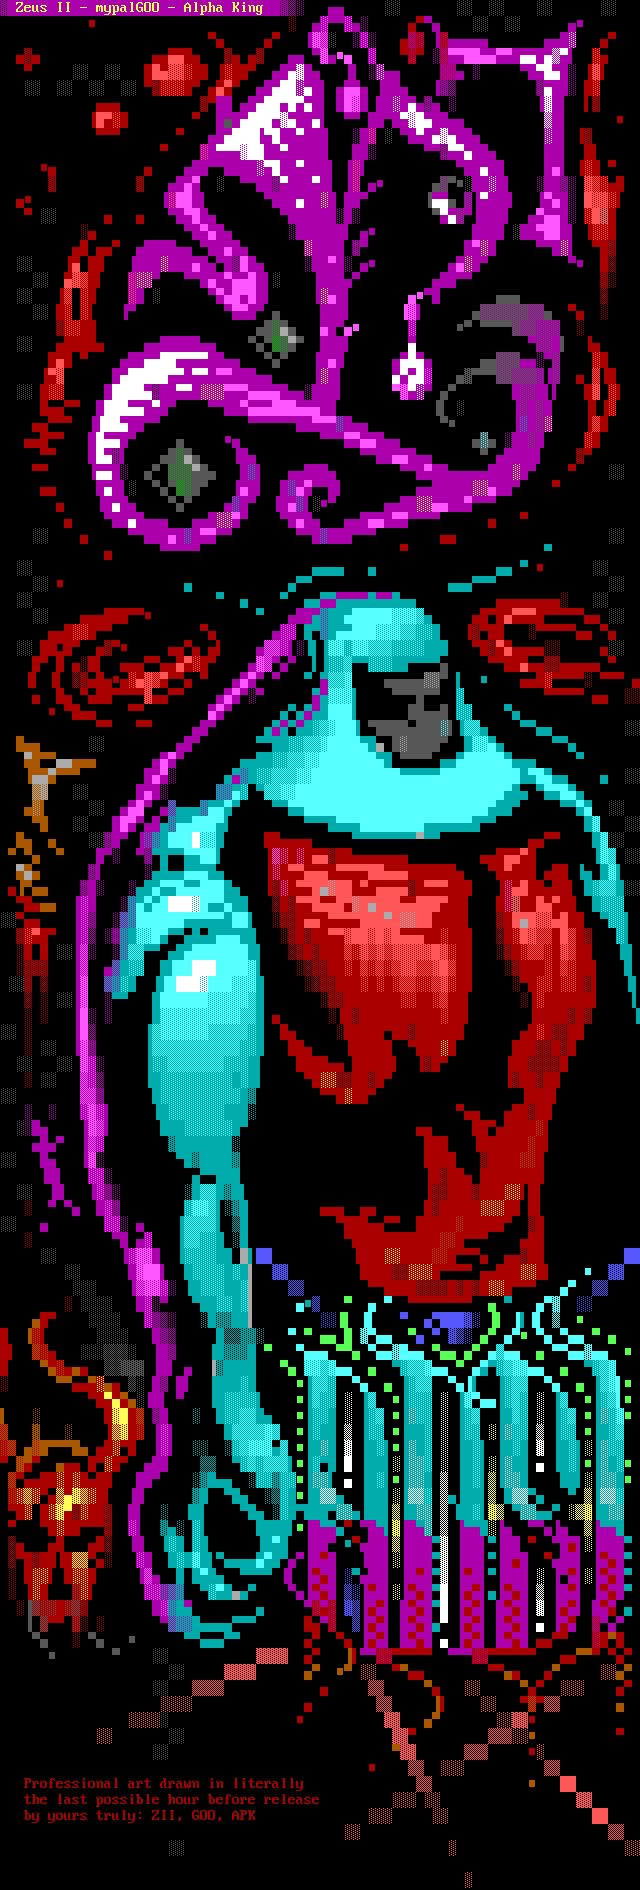 zeus ii, zii, goo, mypal, mypal goo, mypalgoo, alpha king, apk, red, joint, ansi joint, cyan, purple, ansi logo, red, yellow, arm, fire, flame, flames